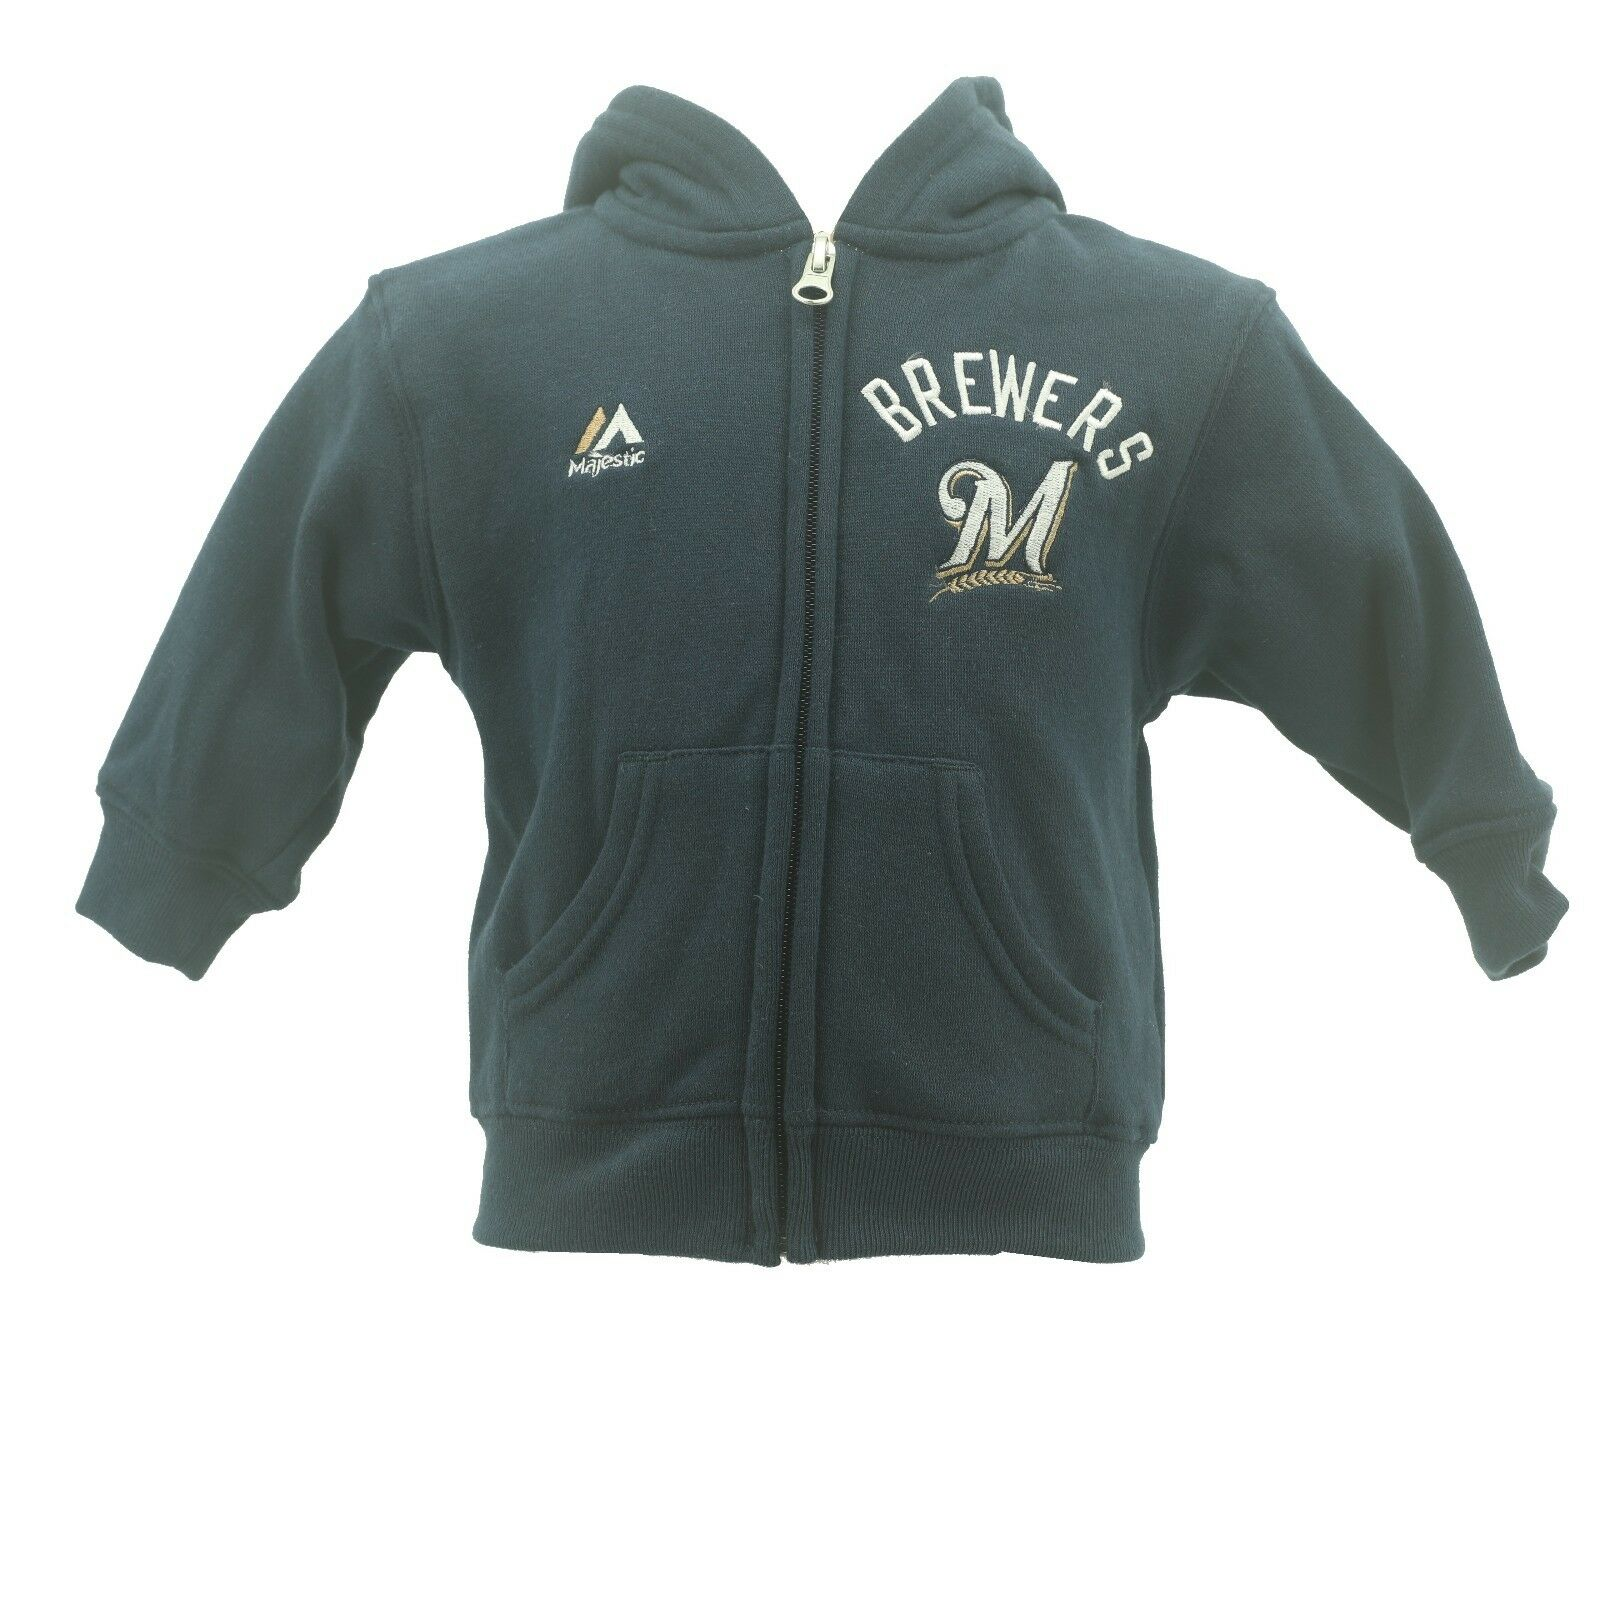 d8160b884 Milwaukee Brewers Baby MLB Infant Toddler Size Zip Up Hooded Sweatshirt New